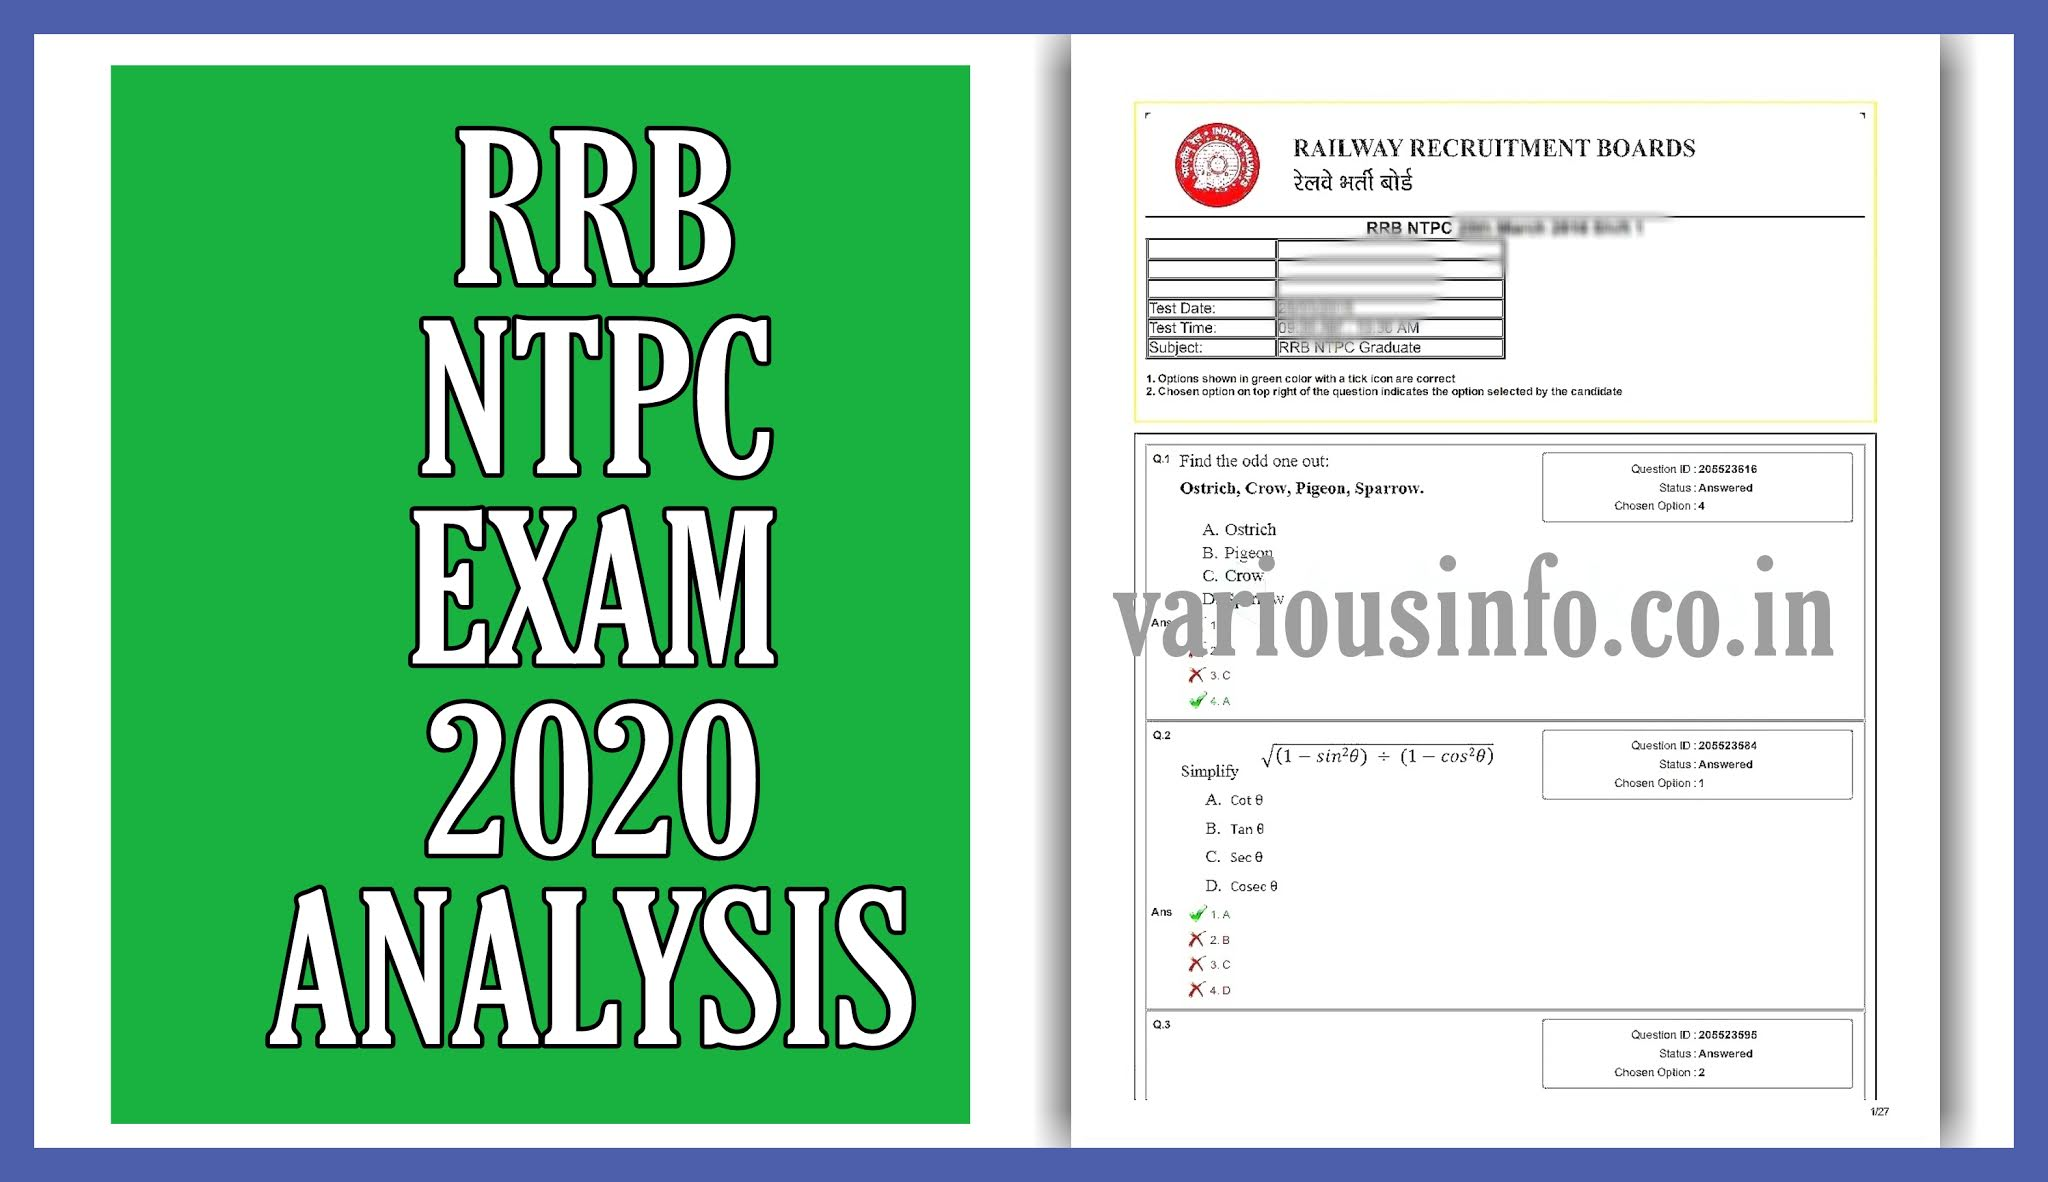 RRB NTPC Exam Analysis 2020 in hindi: RRB NTPC Exam 28th December 2020 Shift-2 का Analysis और Review